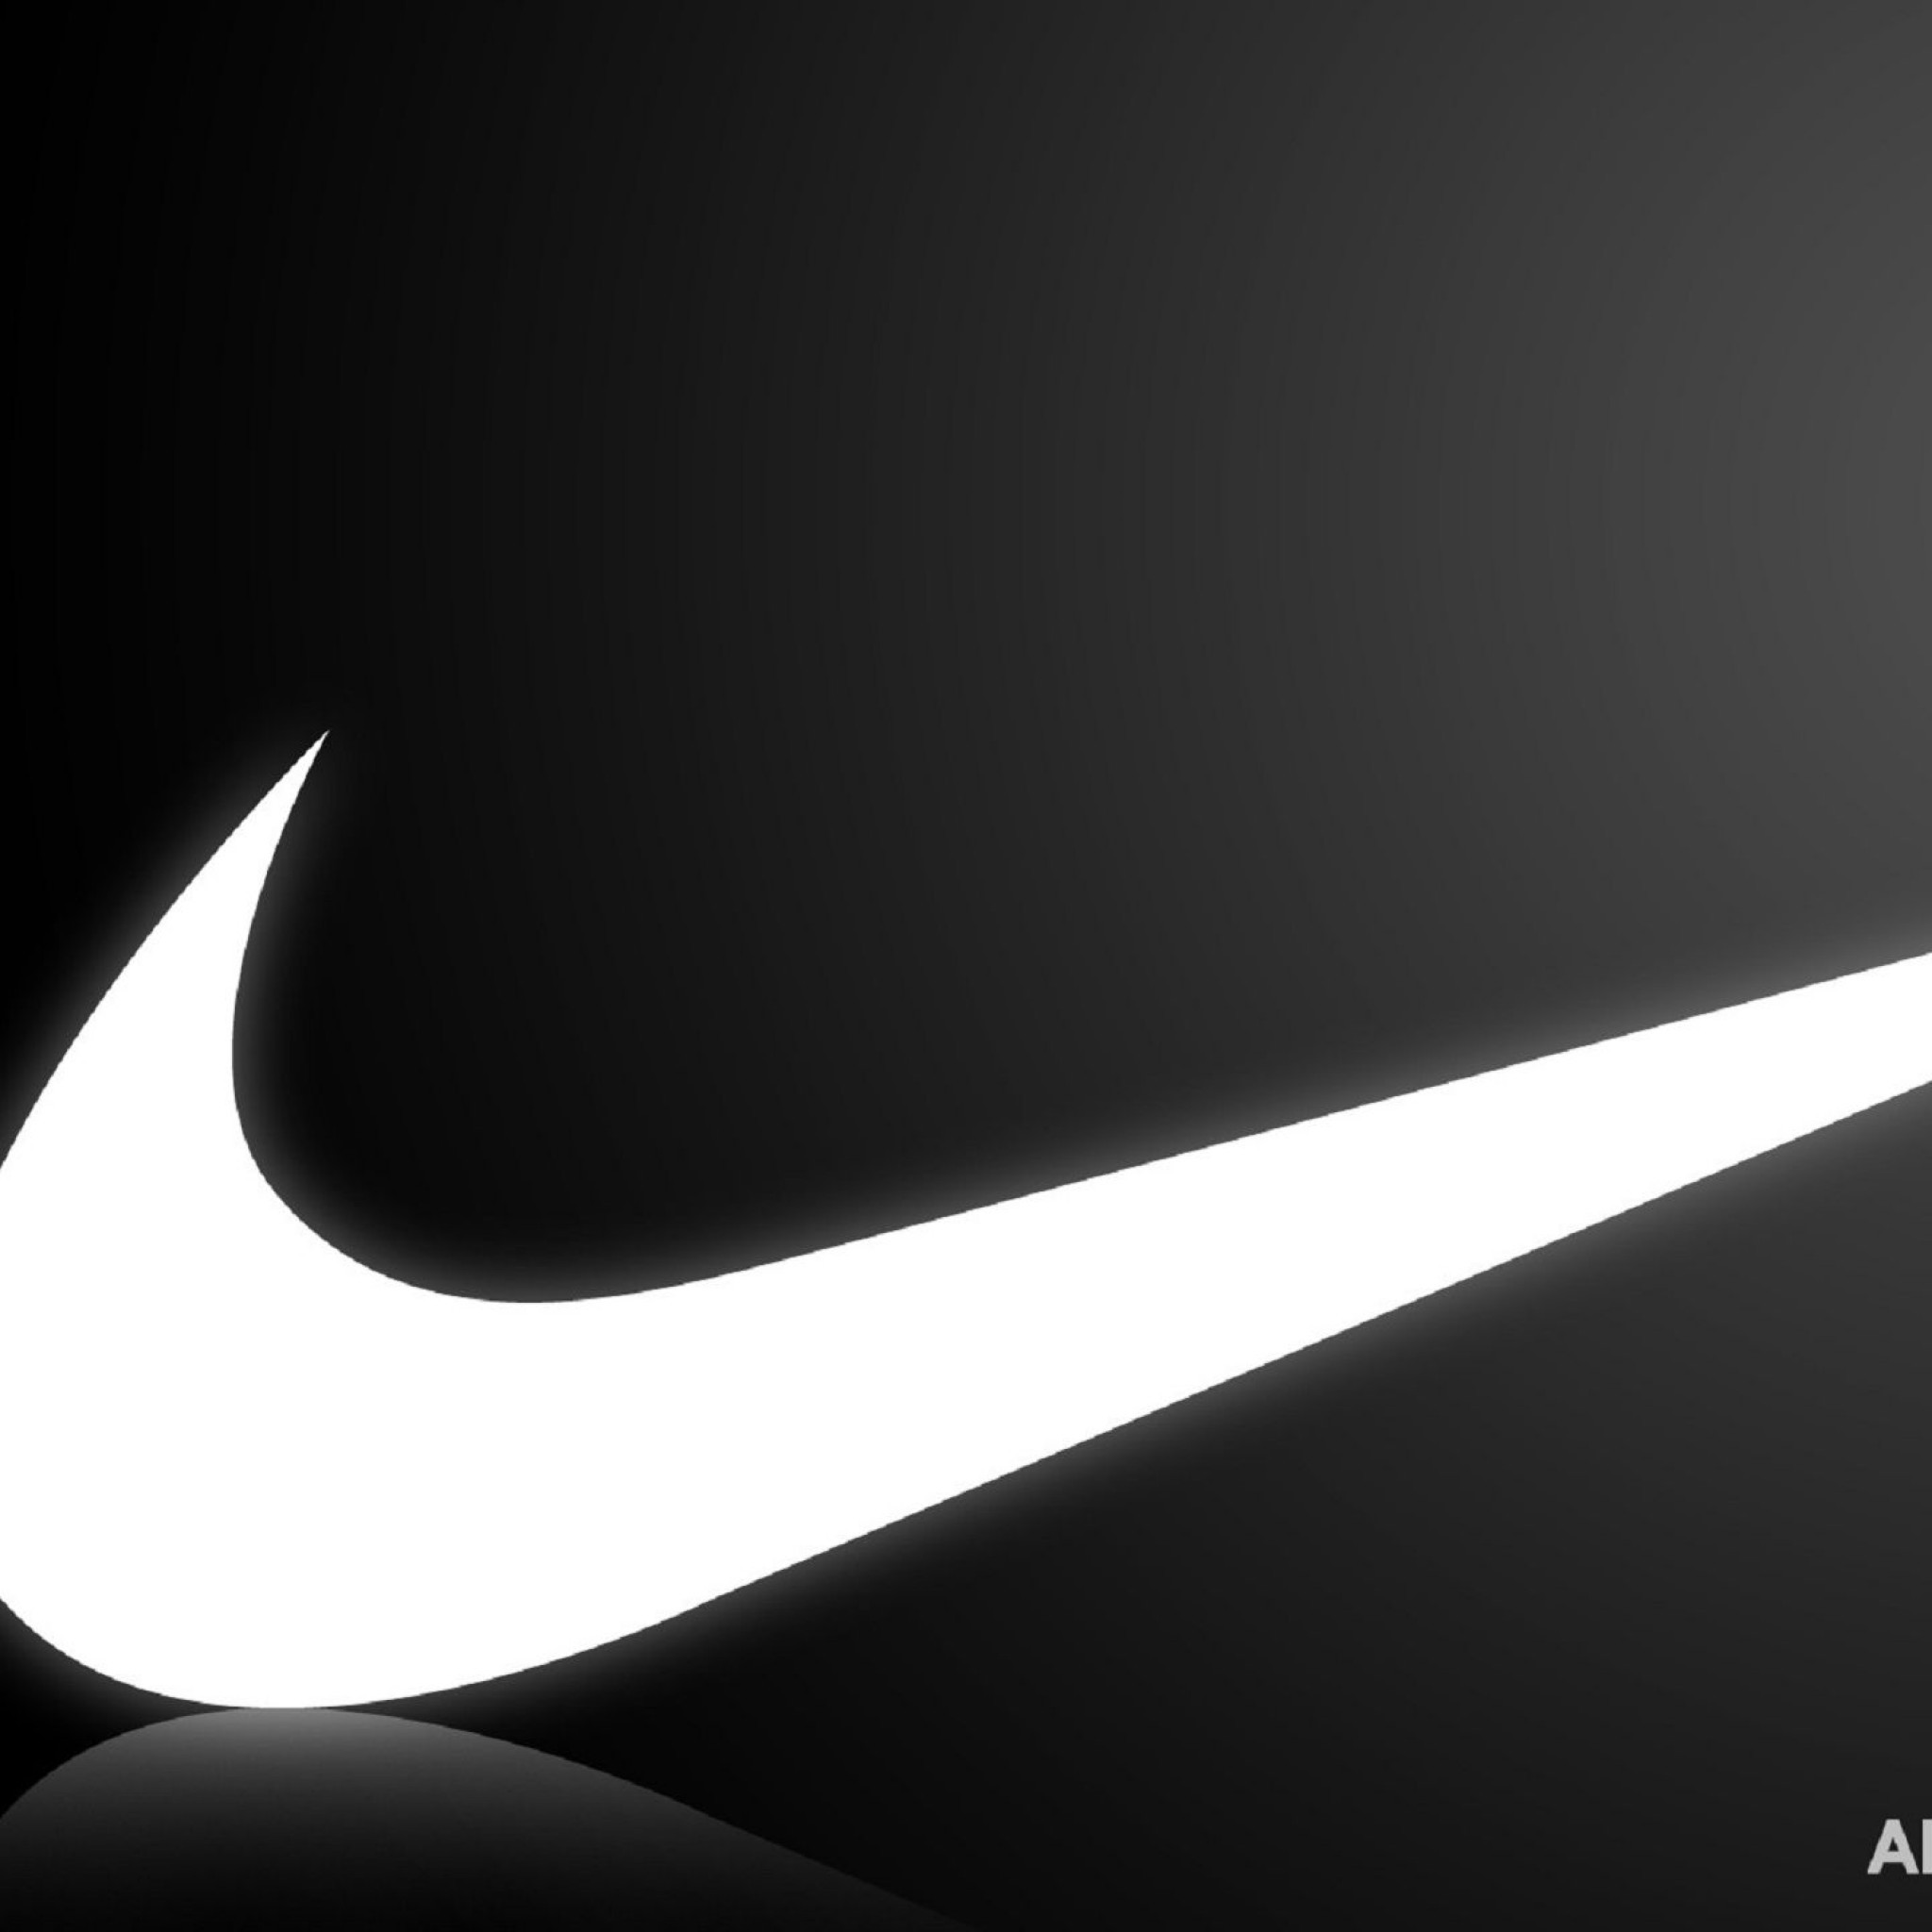 2048x2048 Nike Iphone Wallpapers | iPad Wallpaper Gallery